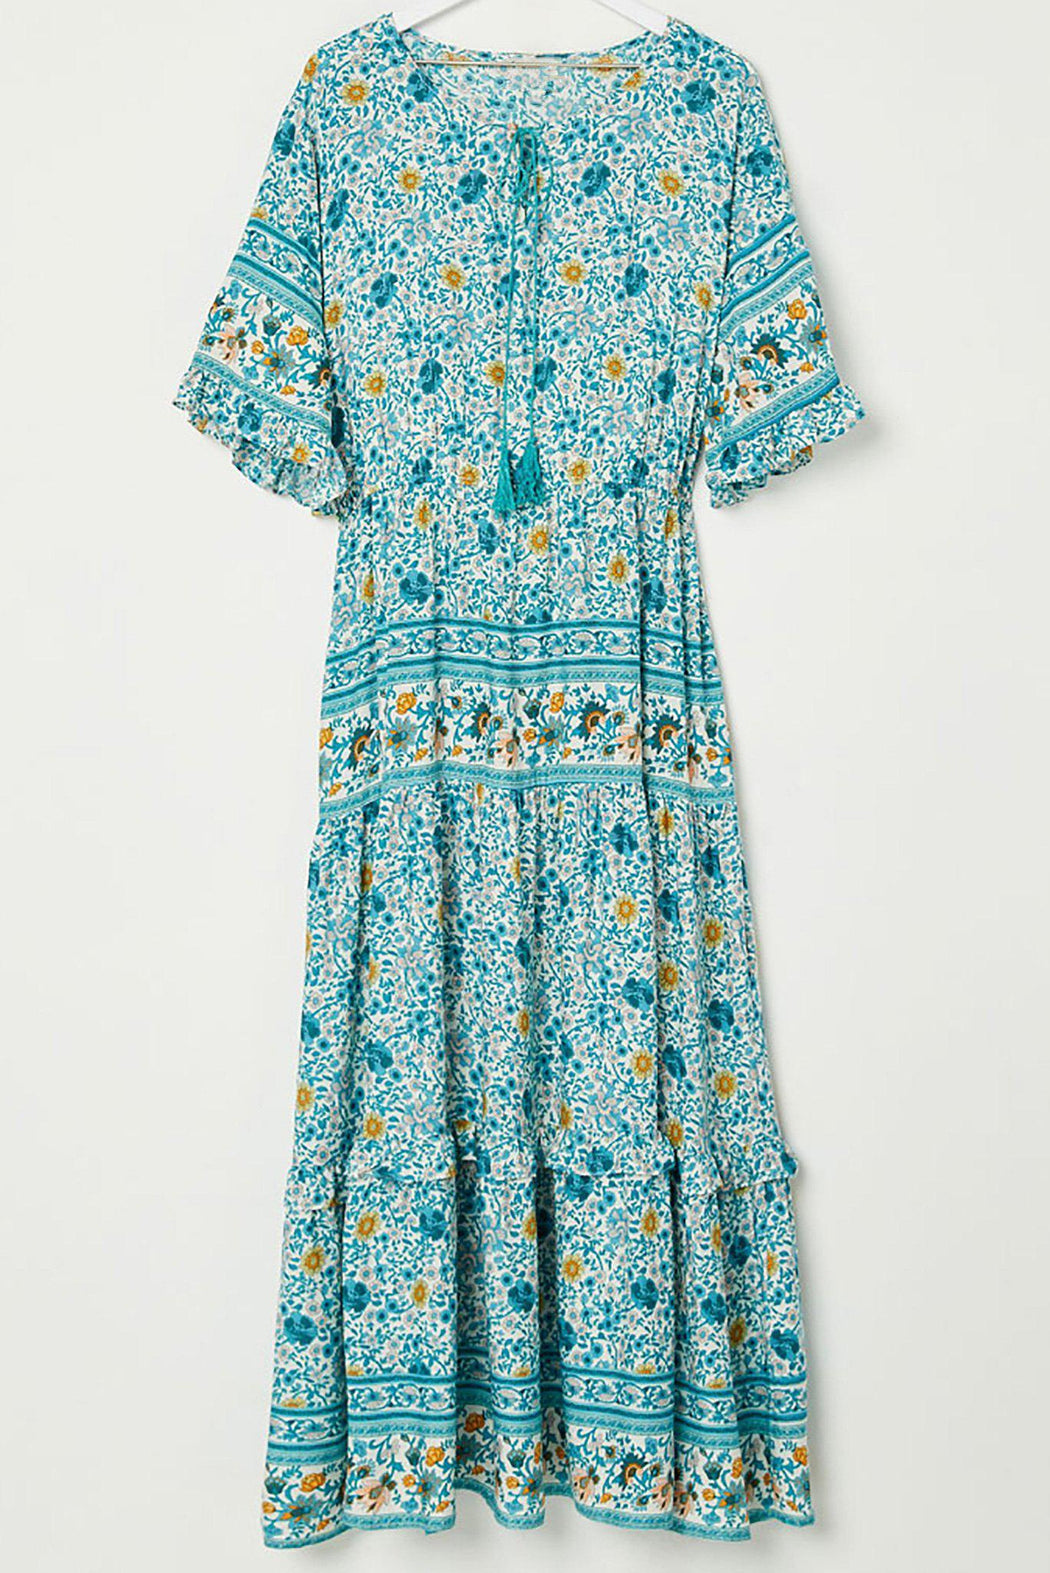 Verona Boho Bell Sleeve Maxi Dress-dress, clothing-Belle and Broome